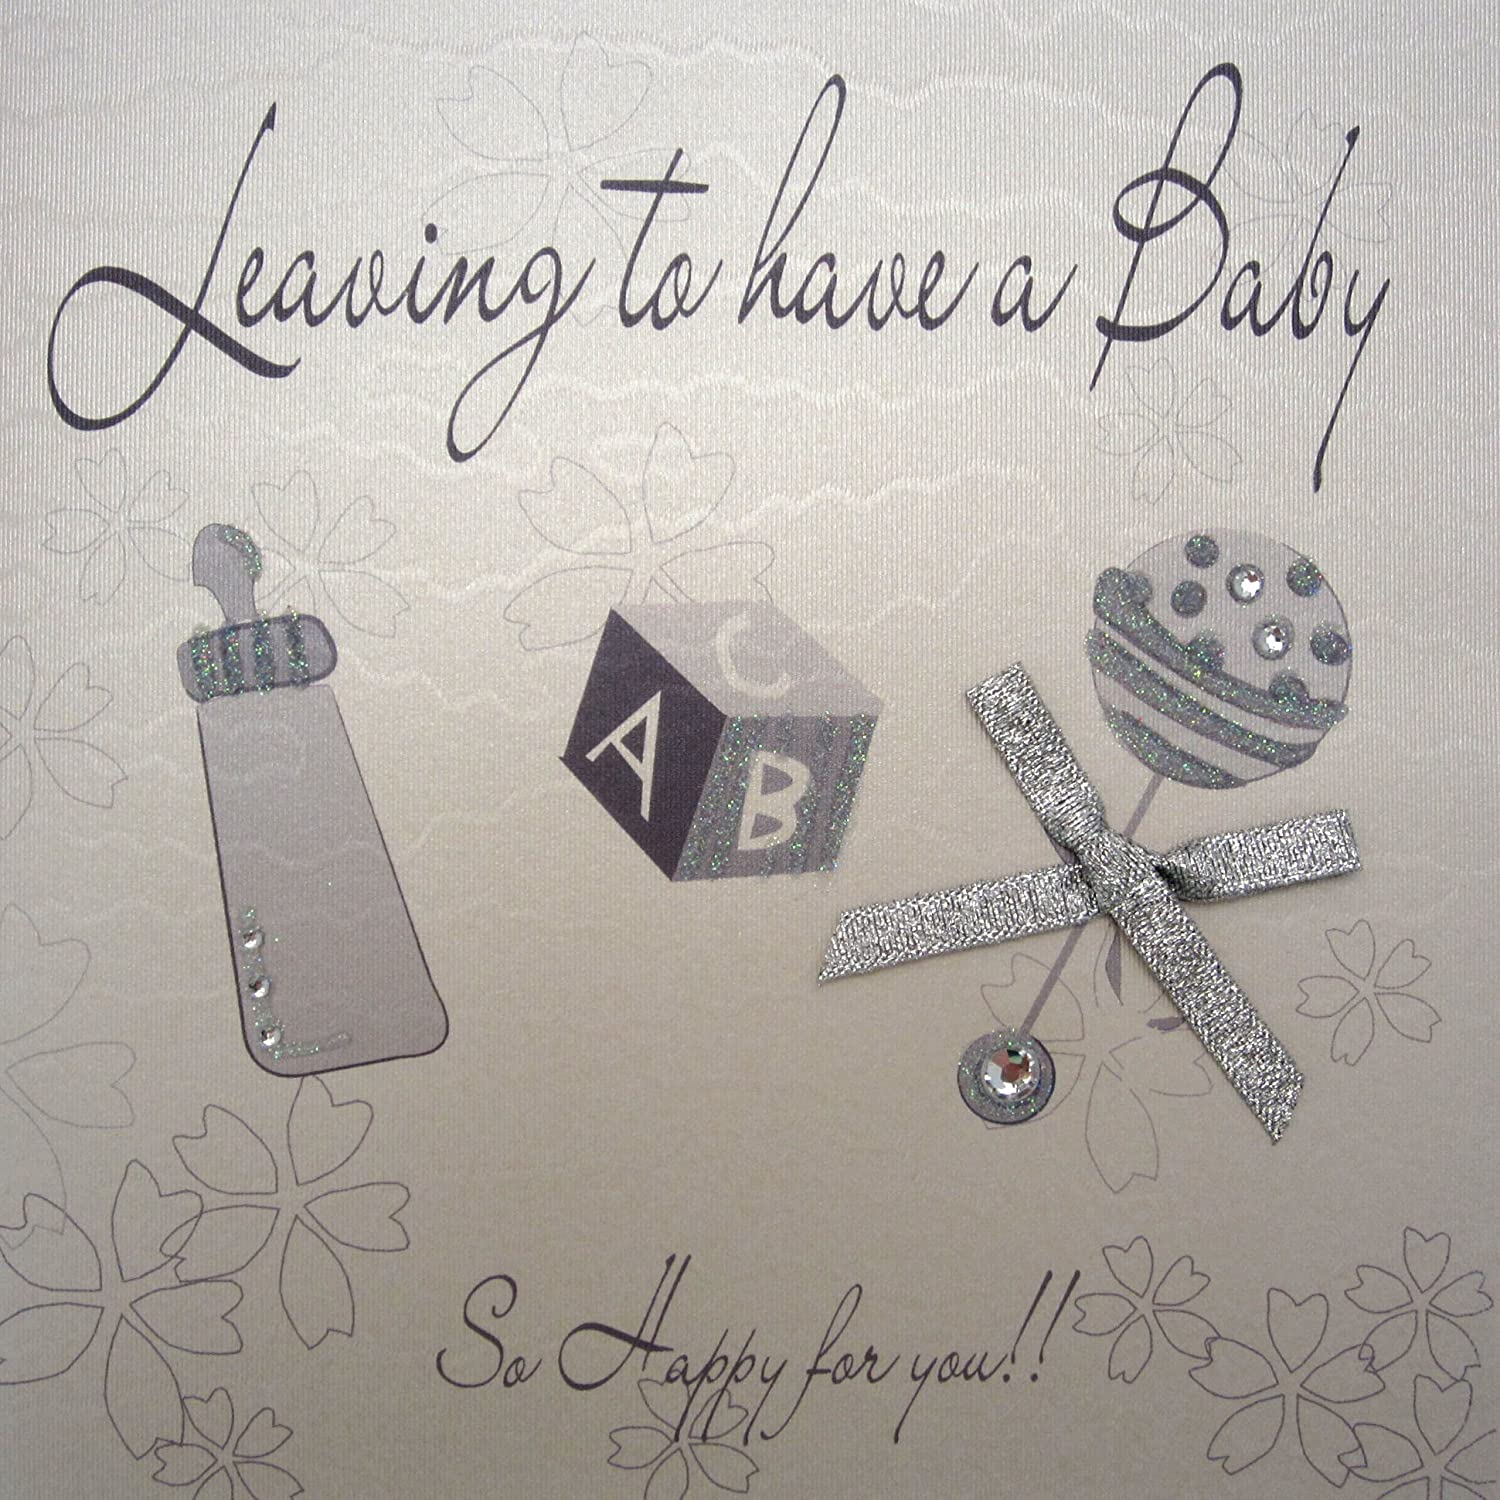 White WHITE COTTON CARDS WB197 Silver Rattle Leaving To Have a Baby Handmade Card